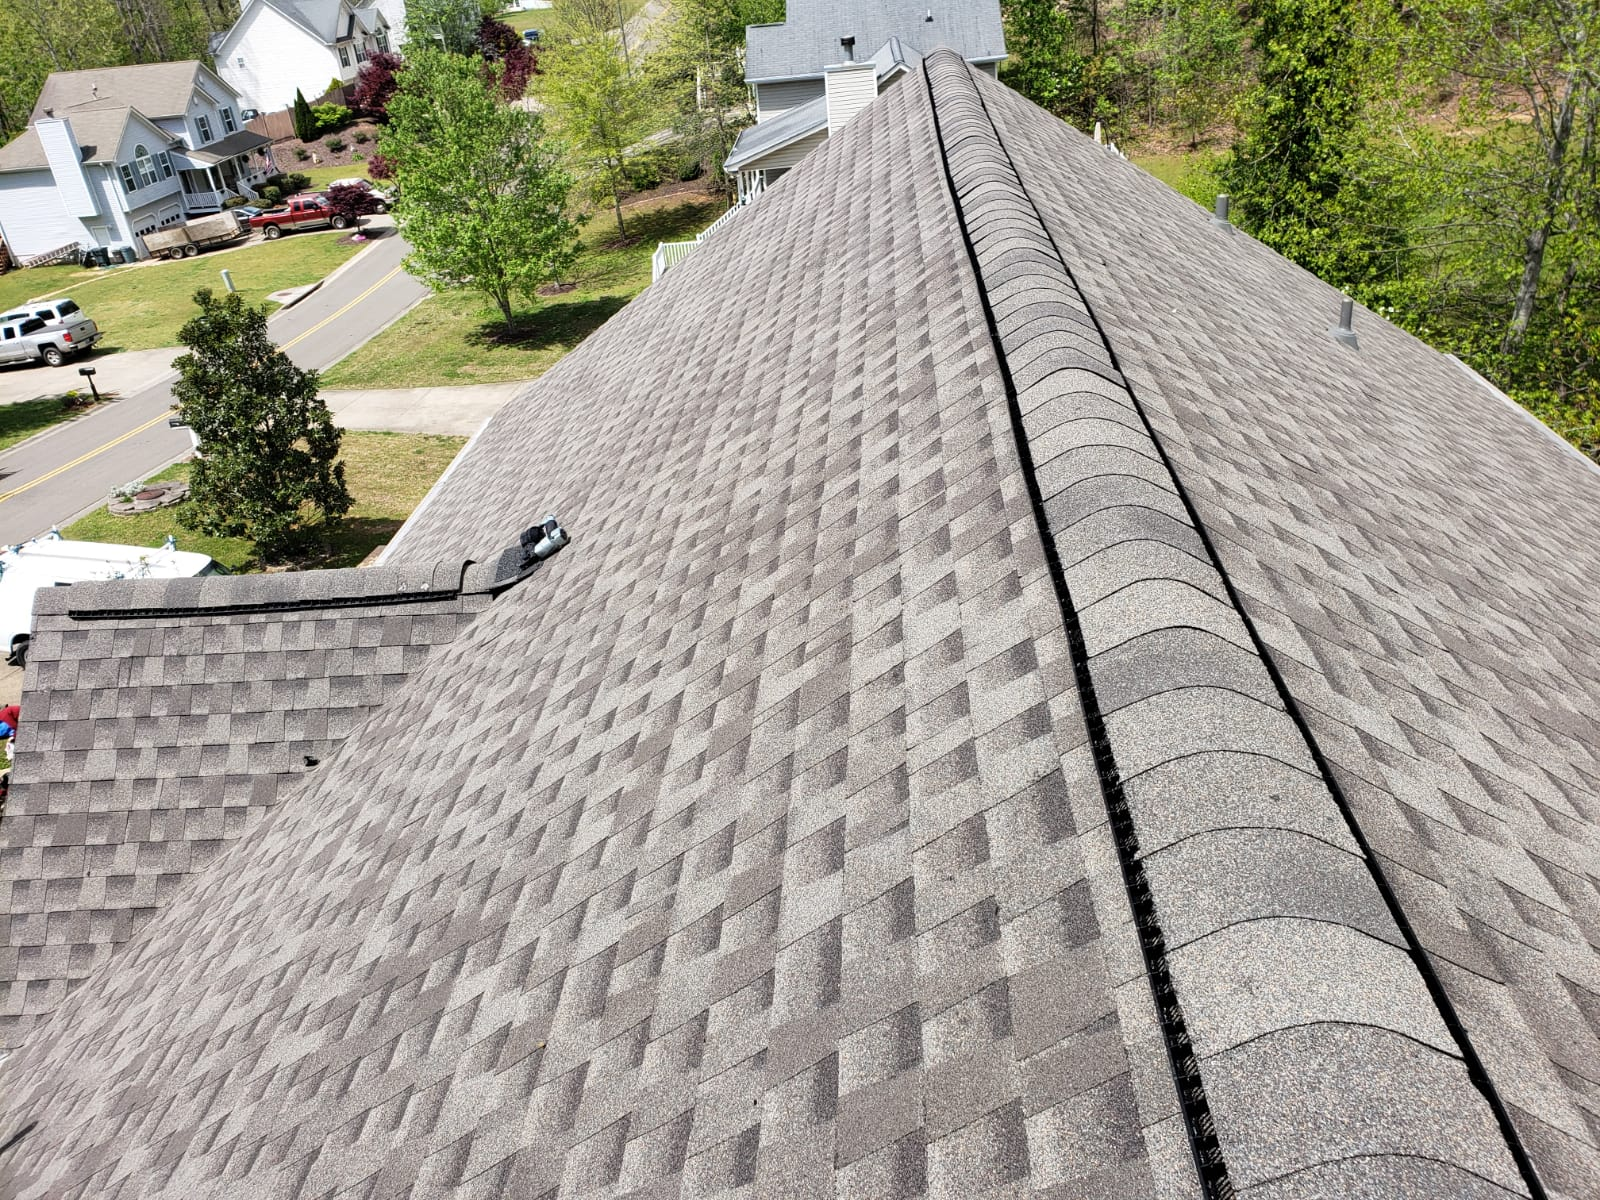 Oyster Grey Asphalt shingle roof